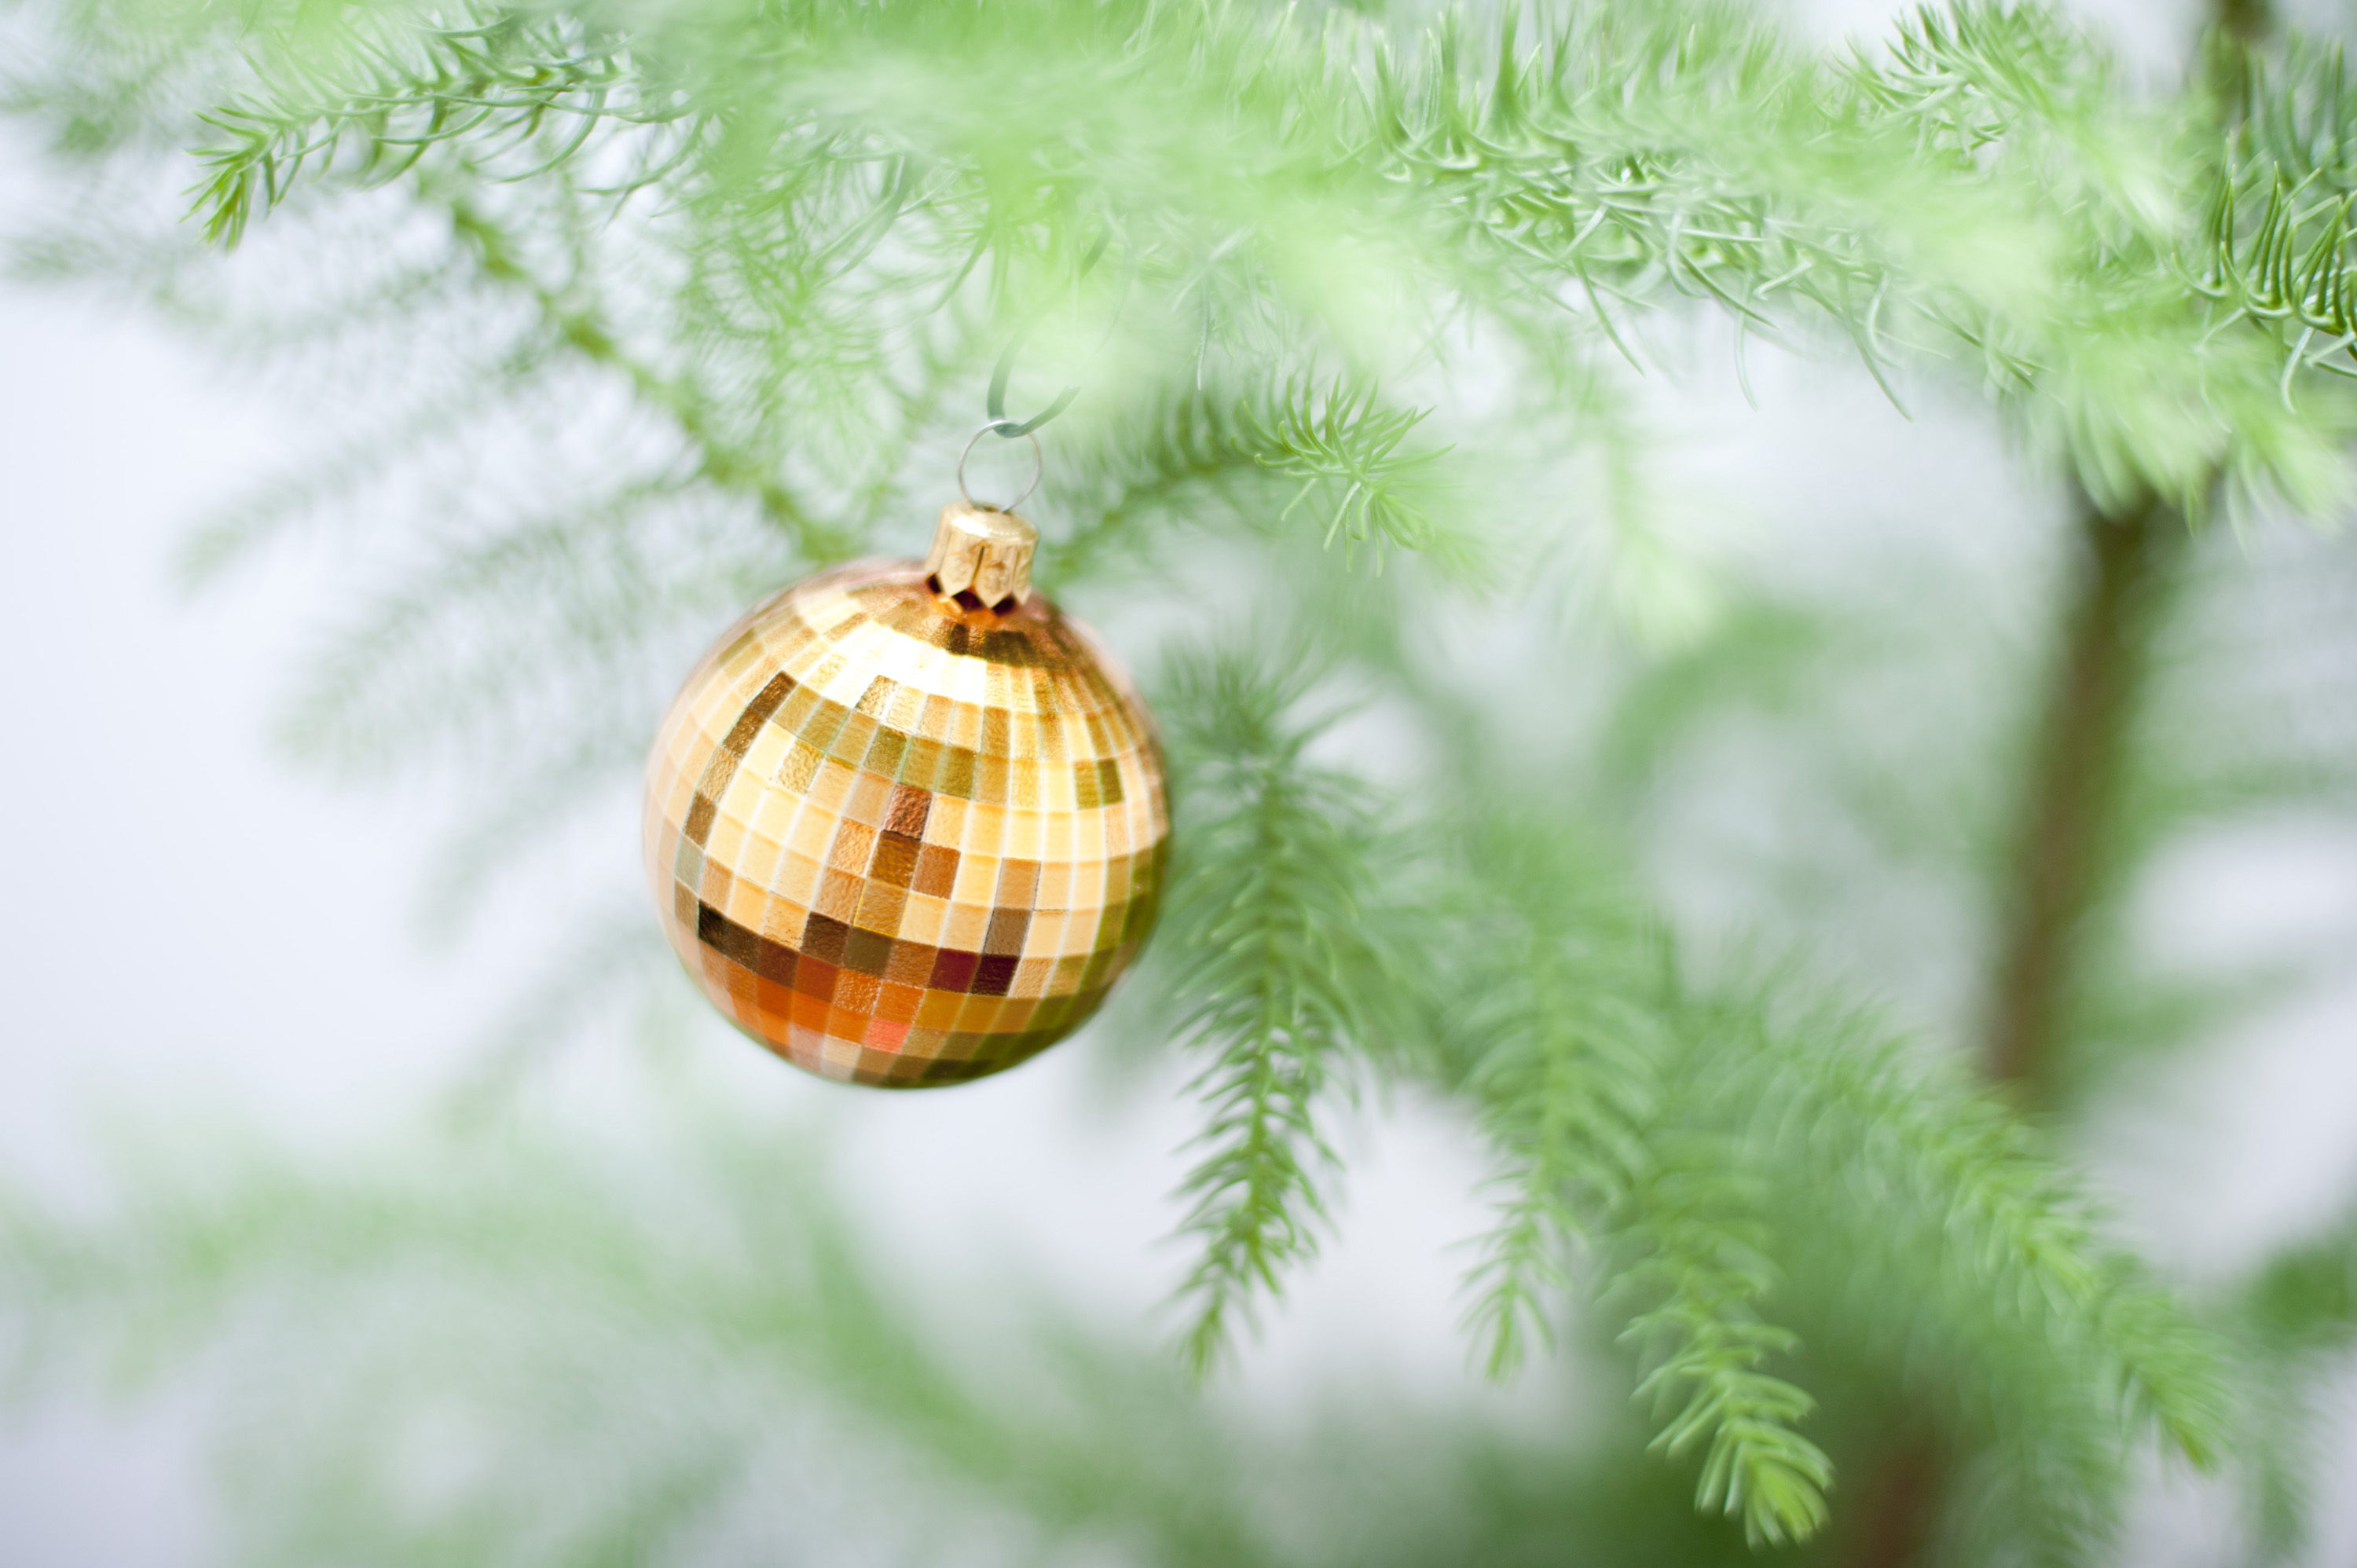 Close up of a single golden Christmas bauble hanging on an evergreen natural pine tree with shallow dof and copyspace for your seasonal greeting